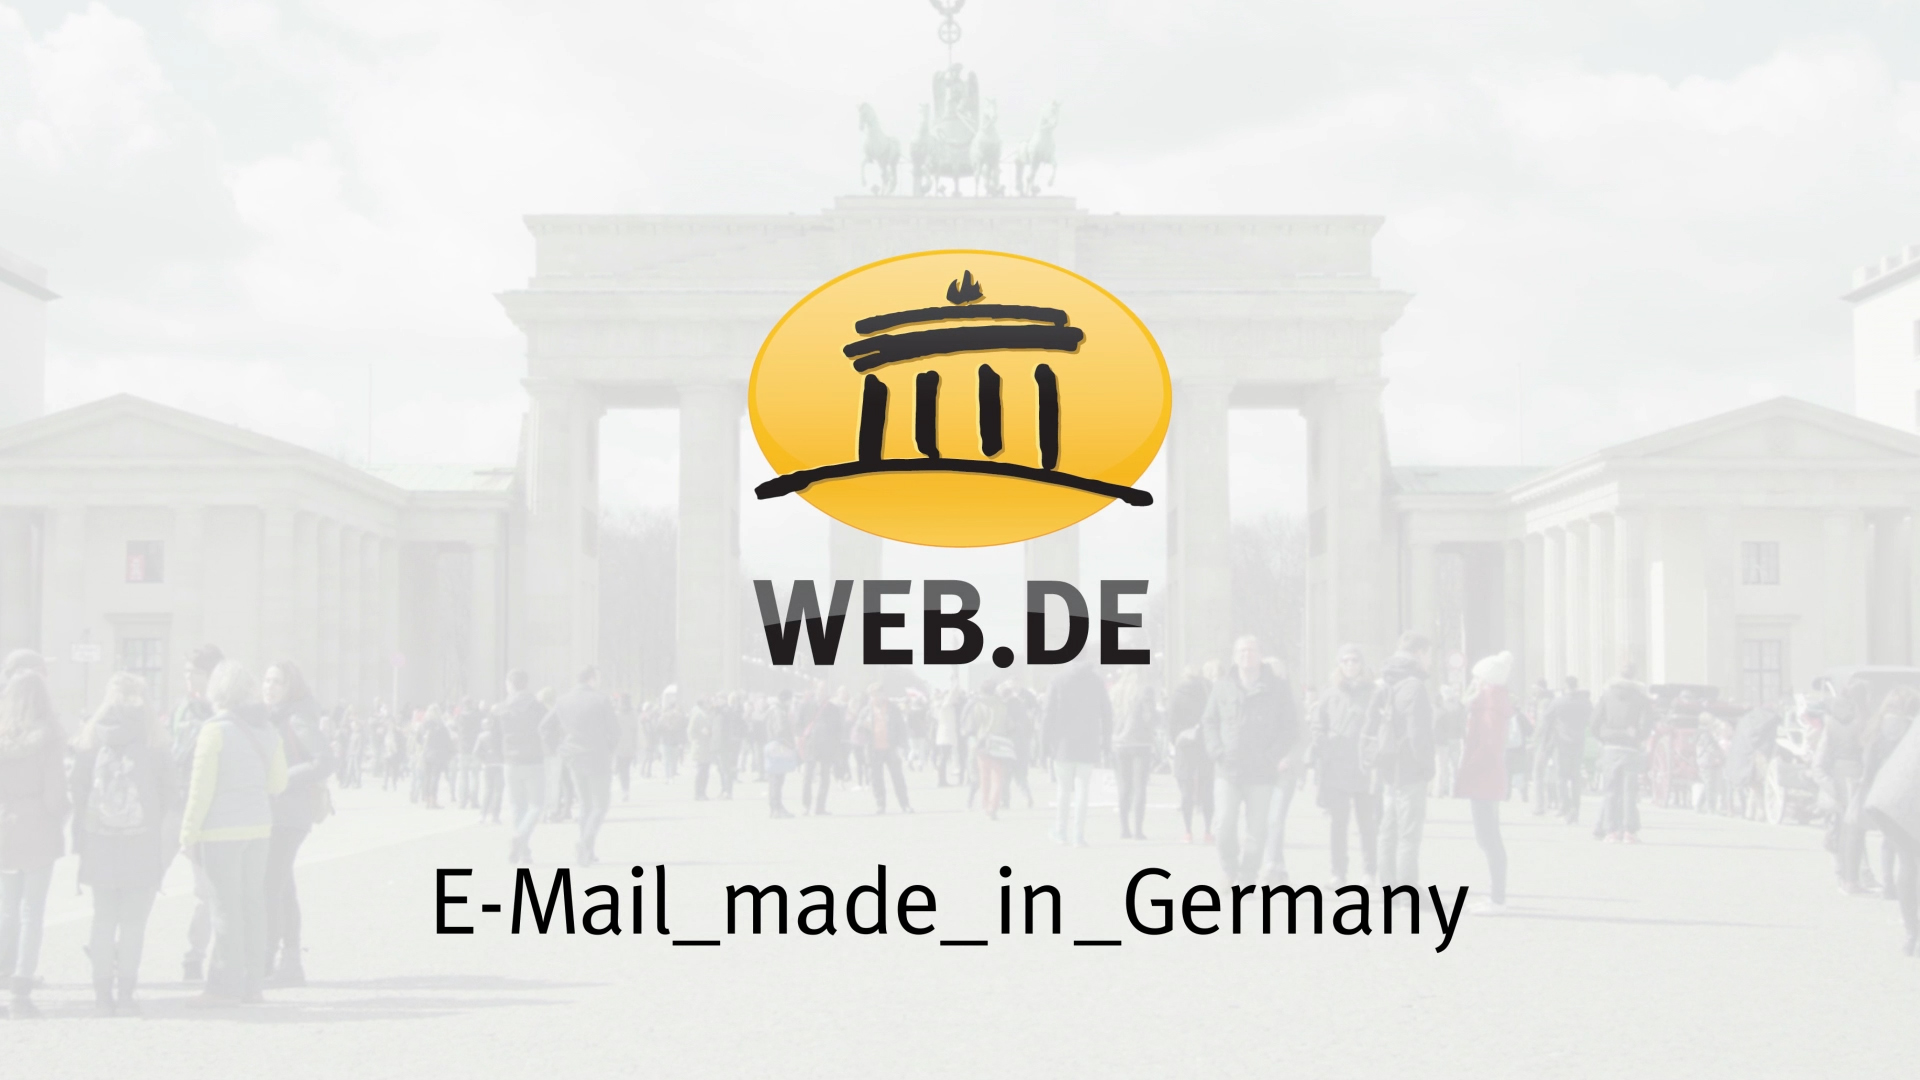 E-Mail_made_in_Germany